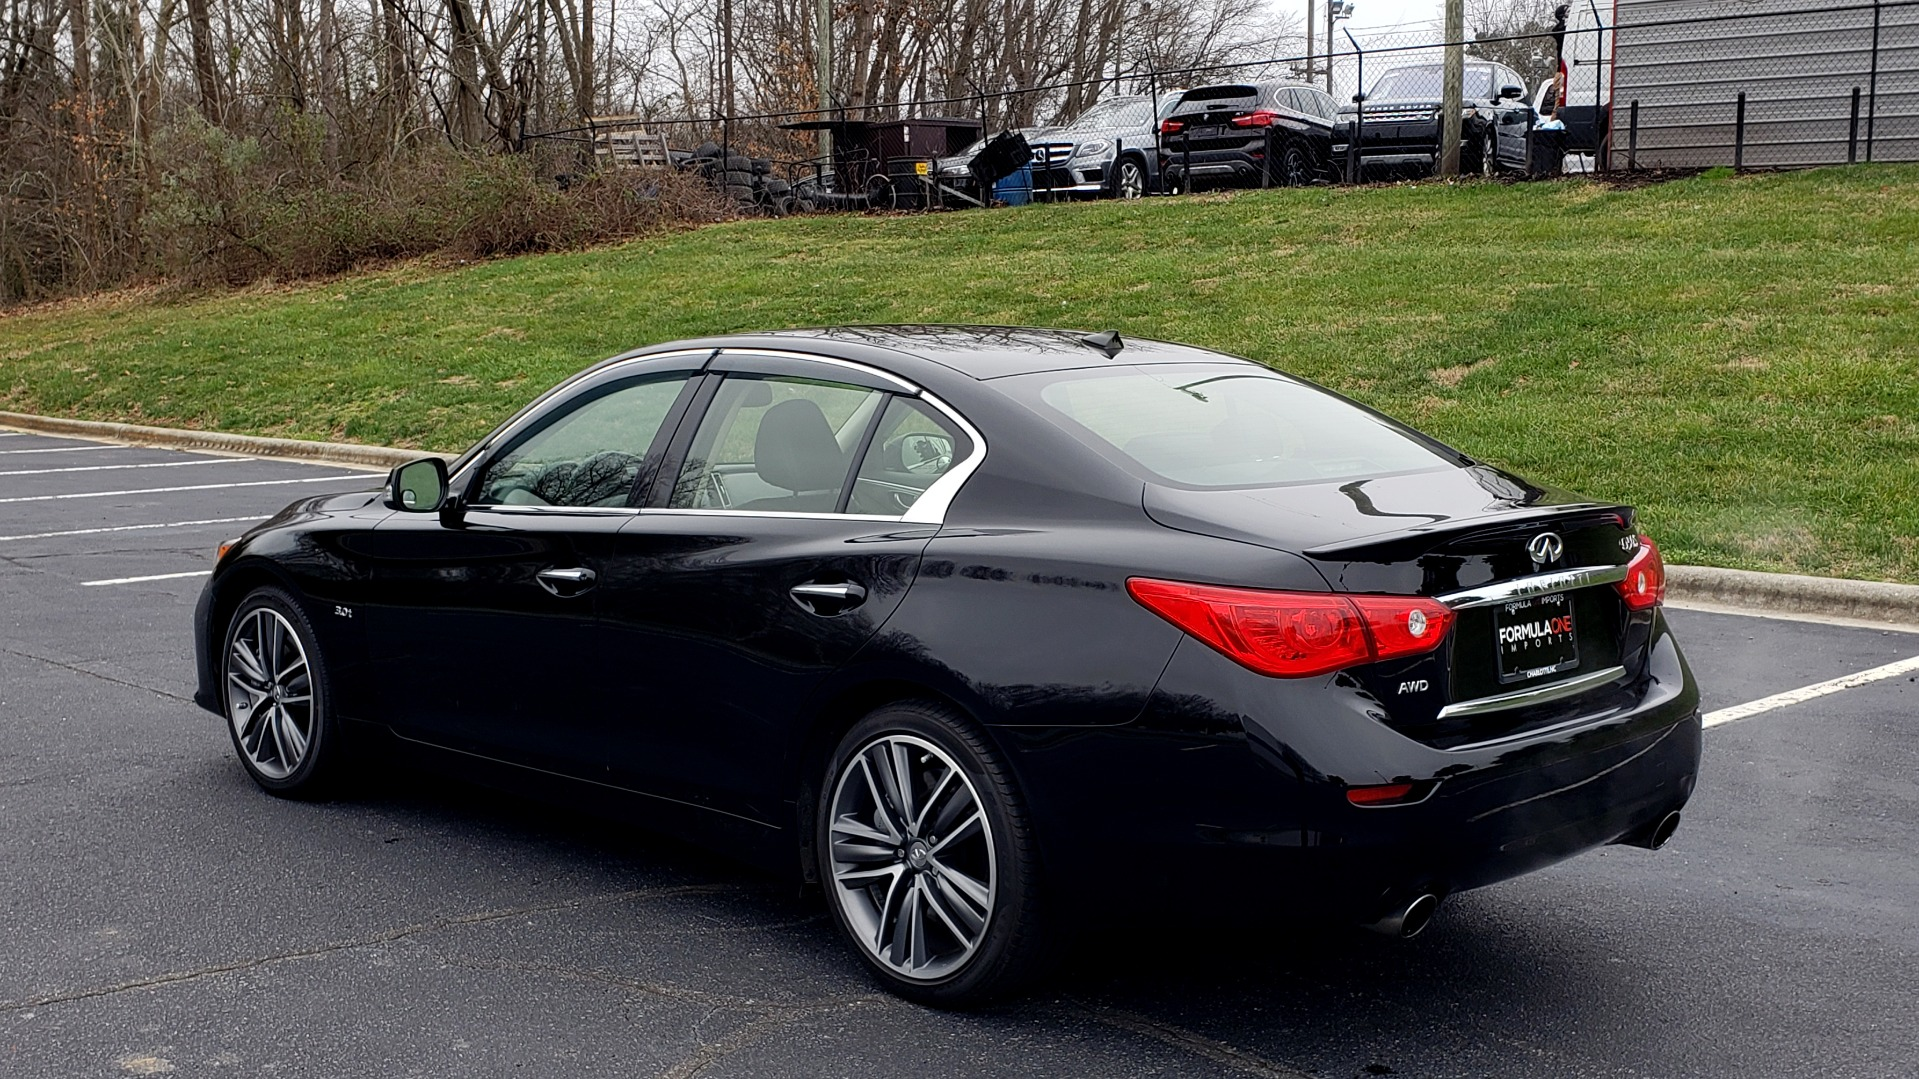 Used 2016 INFINITI Q50 3.0t PREMIUM SPORT AWD / NAV / SUNROOF / HTD STS / REARVIEW for sale Sold at Formula Imports in Charlotte NC 28227 3